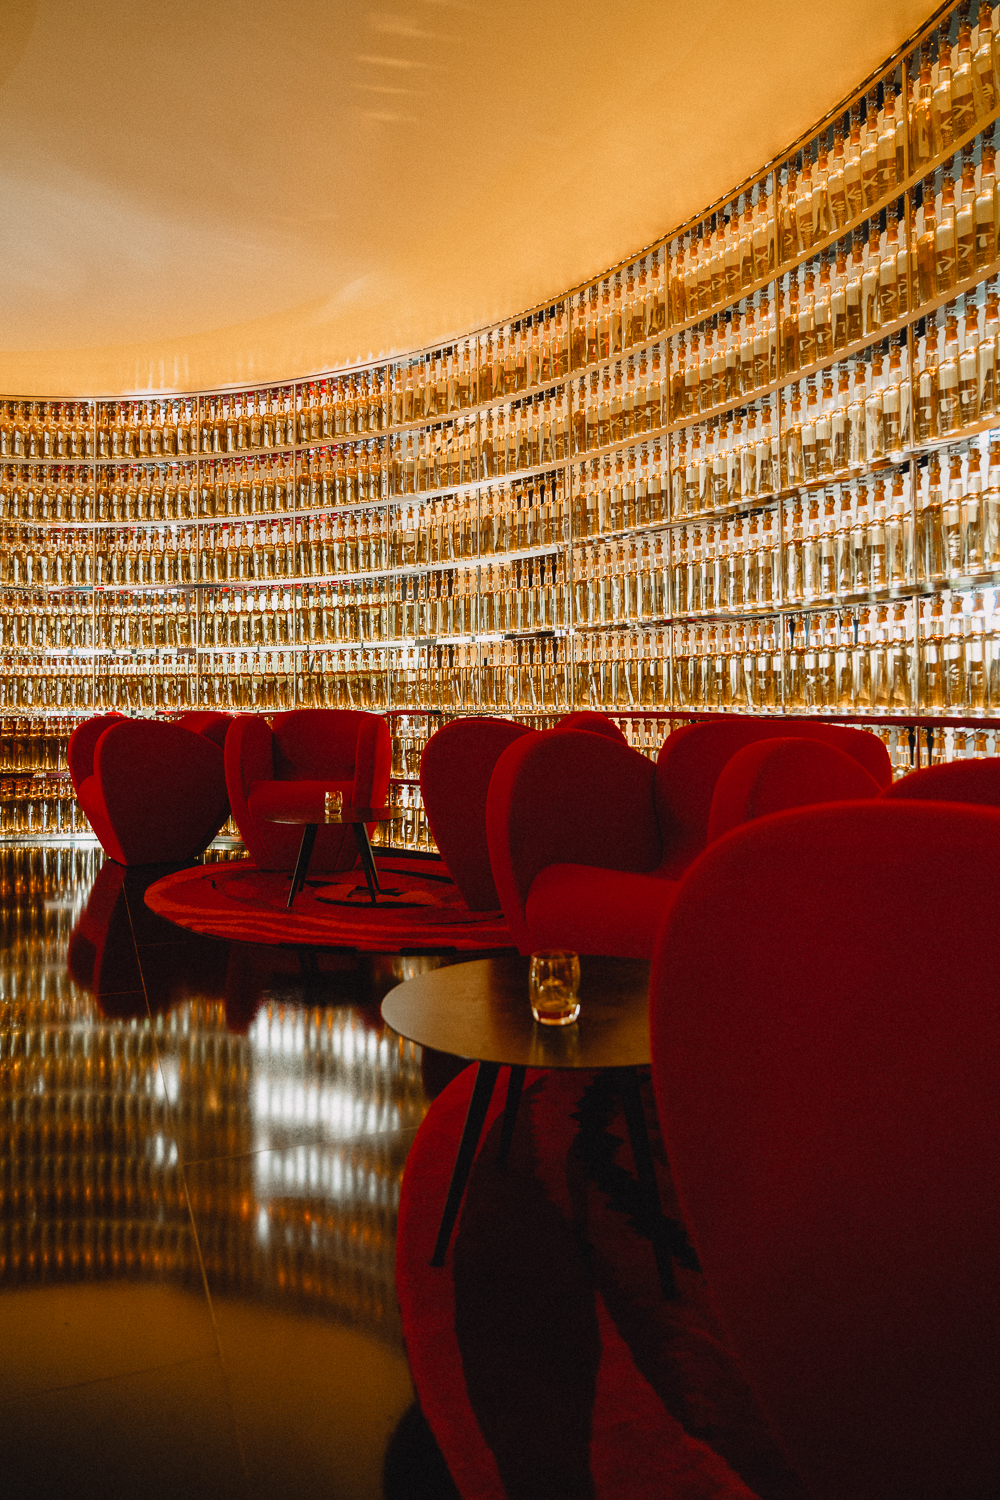 The Next Whiskey Bar, at the Watergate Hotel, in Washington, DC.